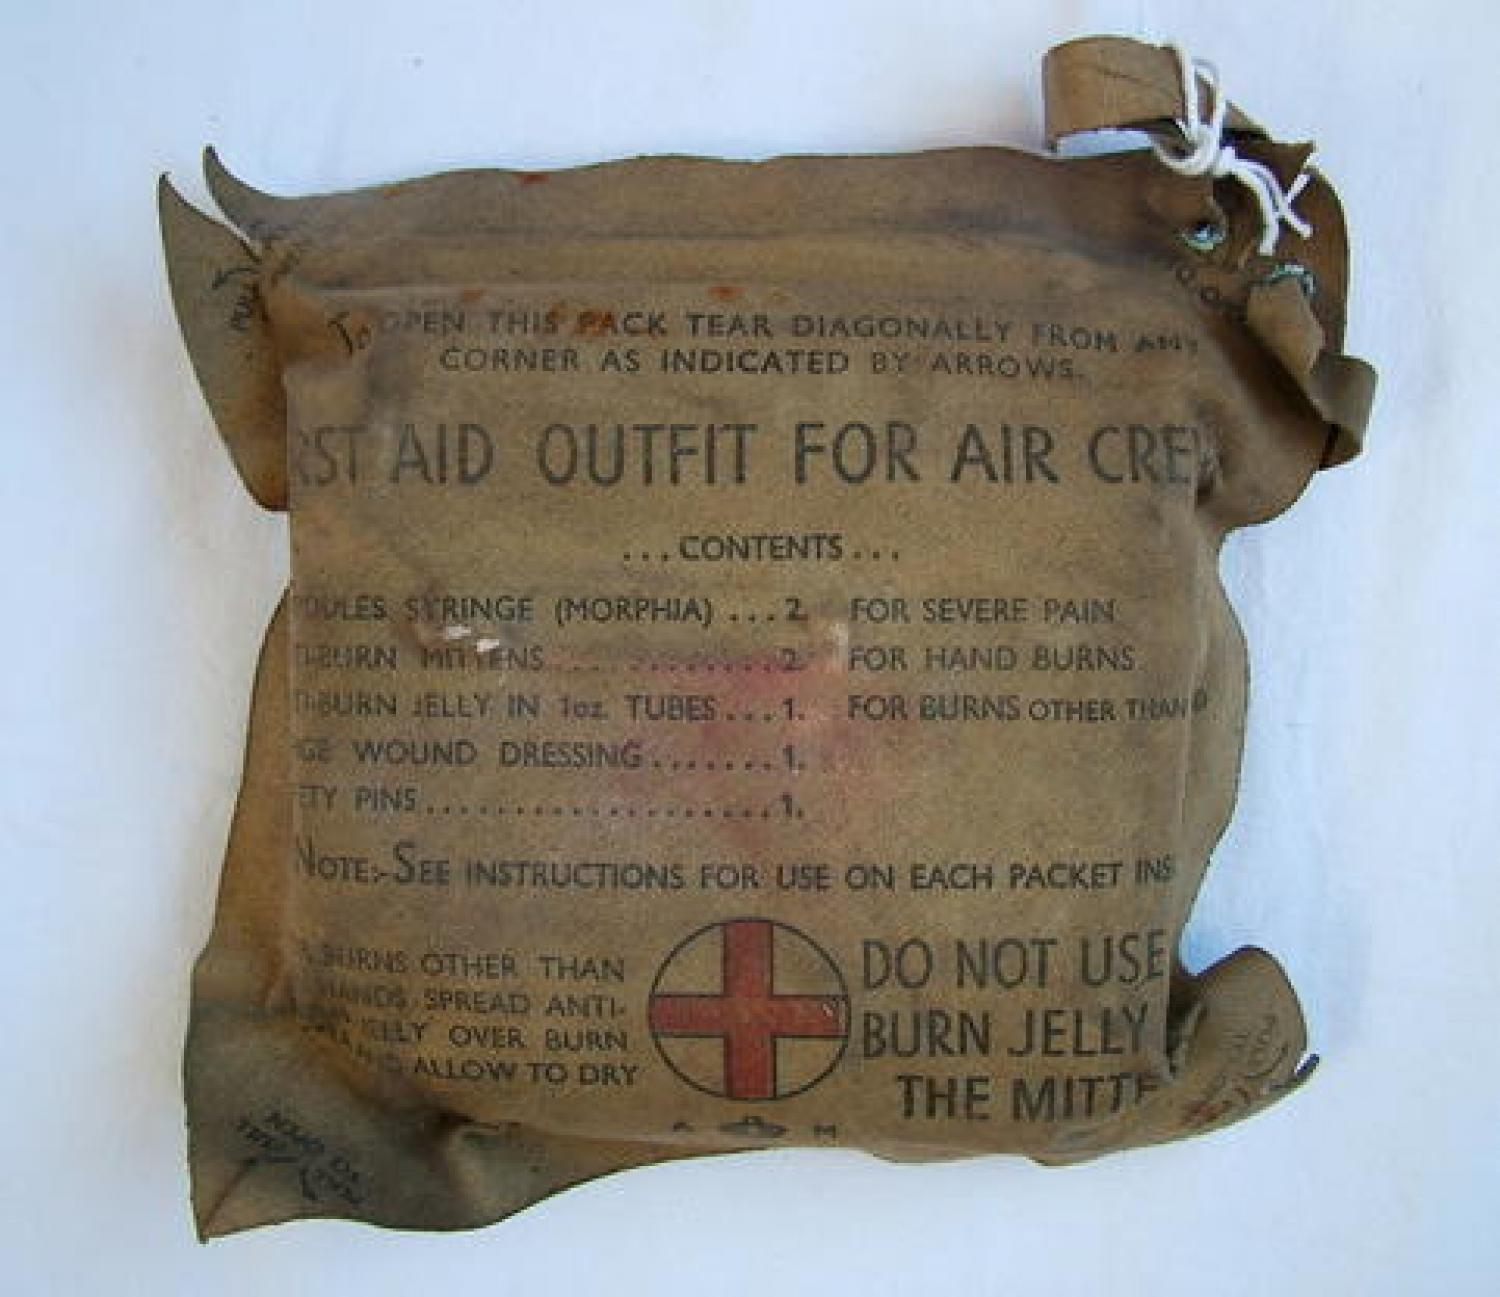 RAF First Aid Outfit For Aircrews, MK.II